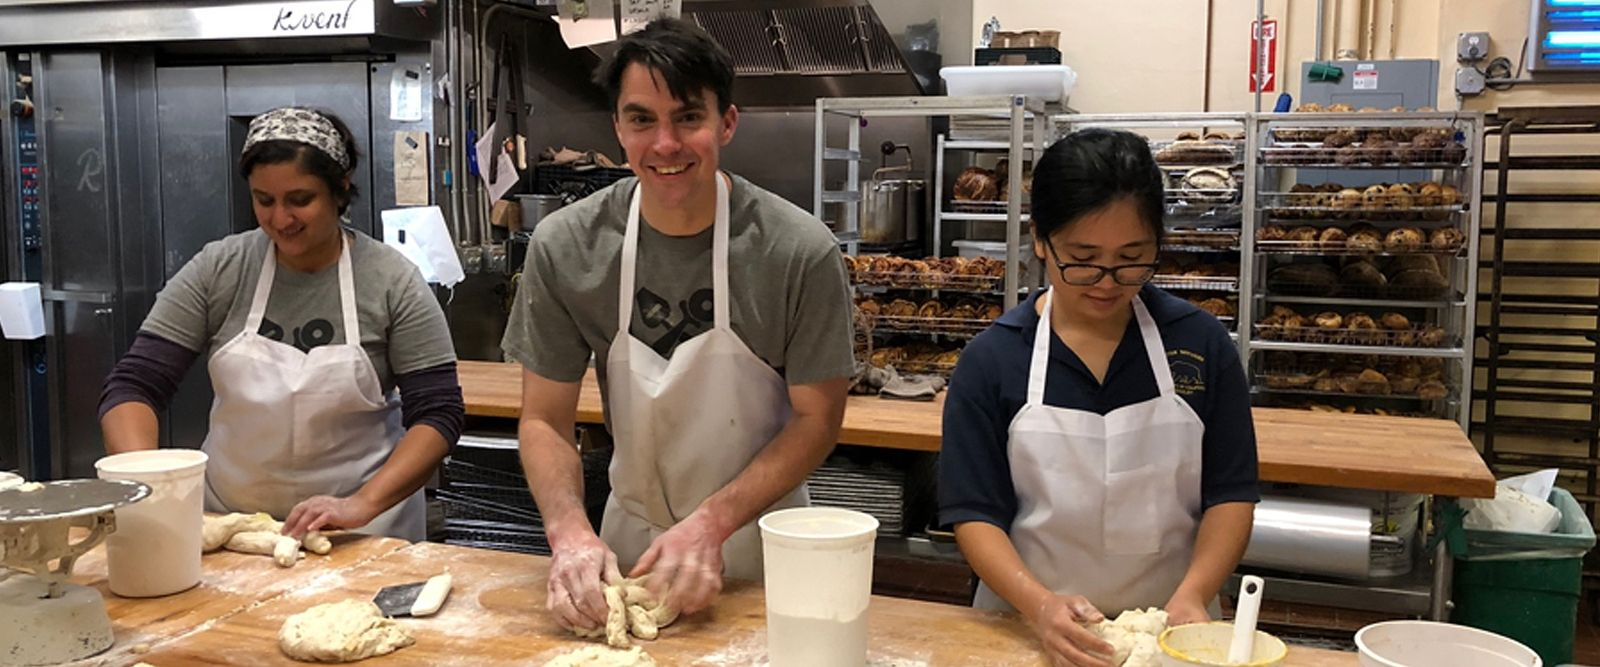 two women and one man in a bakery kitchen making bread